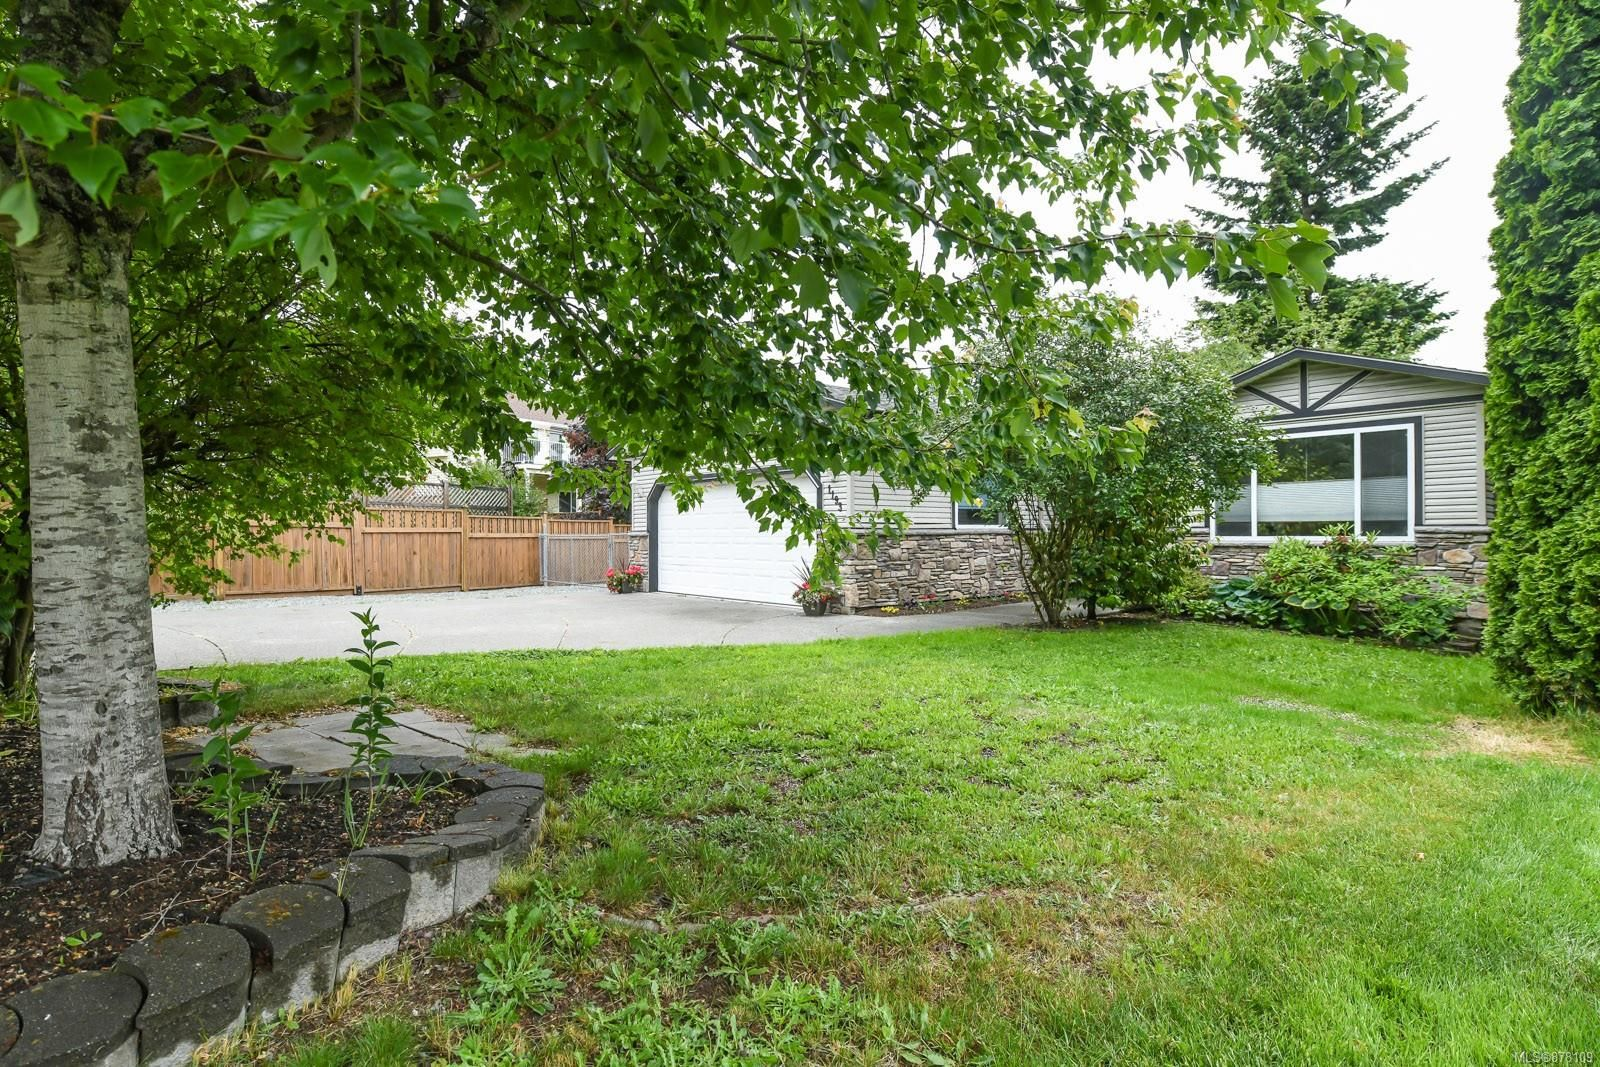 Main Photo: 1193 View Pl in : CV Courtenay East House for sale (Comox Valley)  : MLS®# 878109